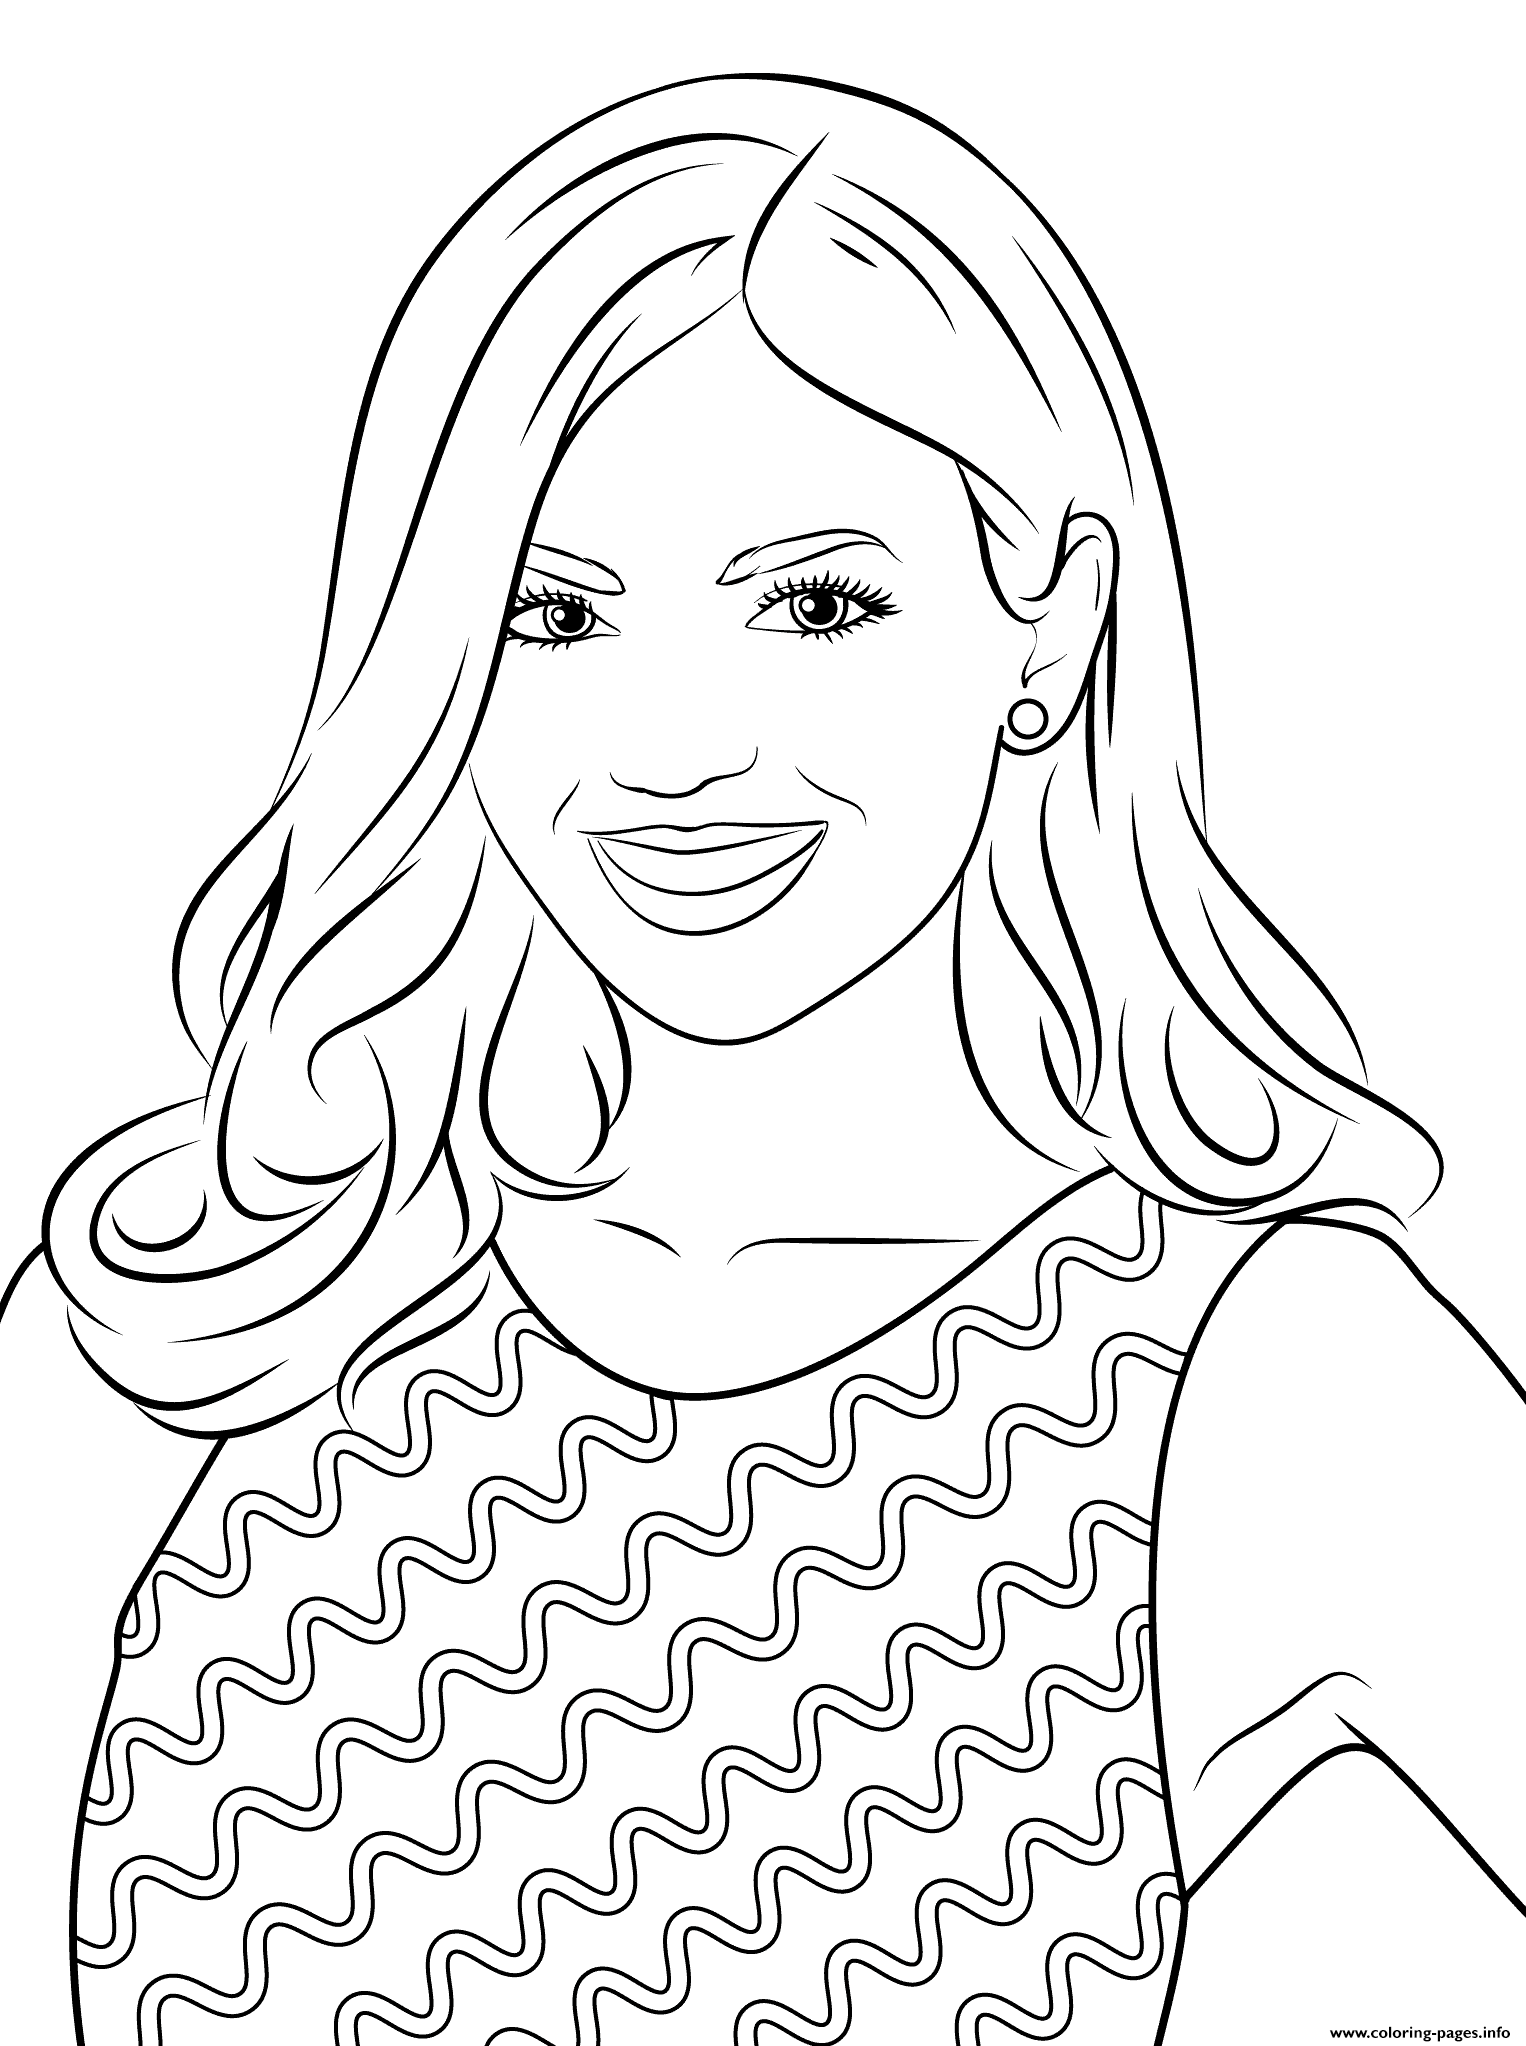 Victoria Justice Celebrity Coloring Pages Printable